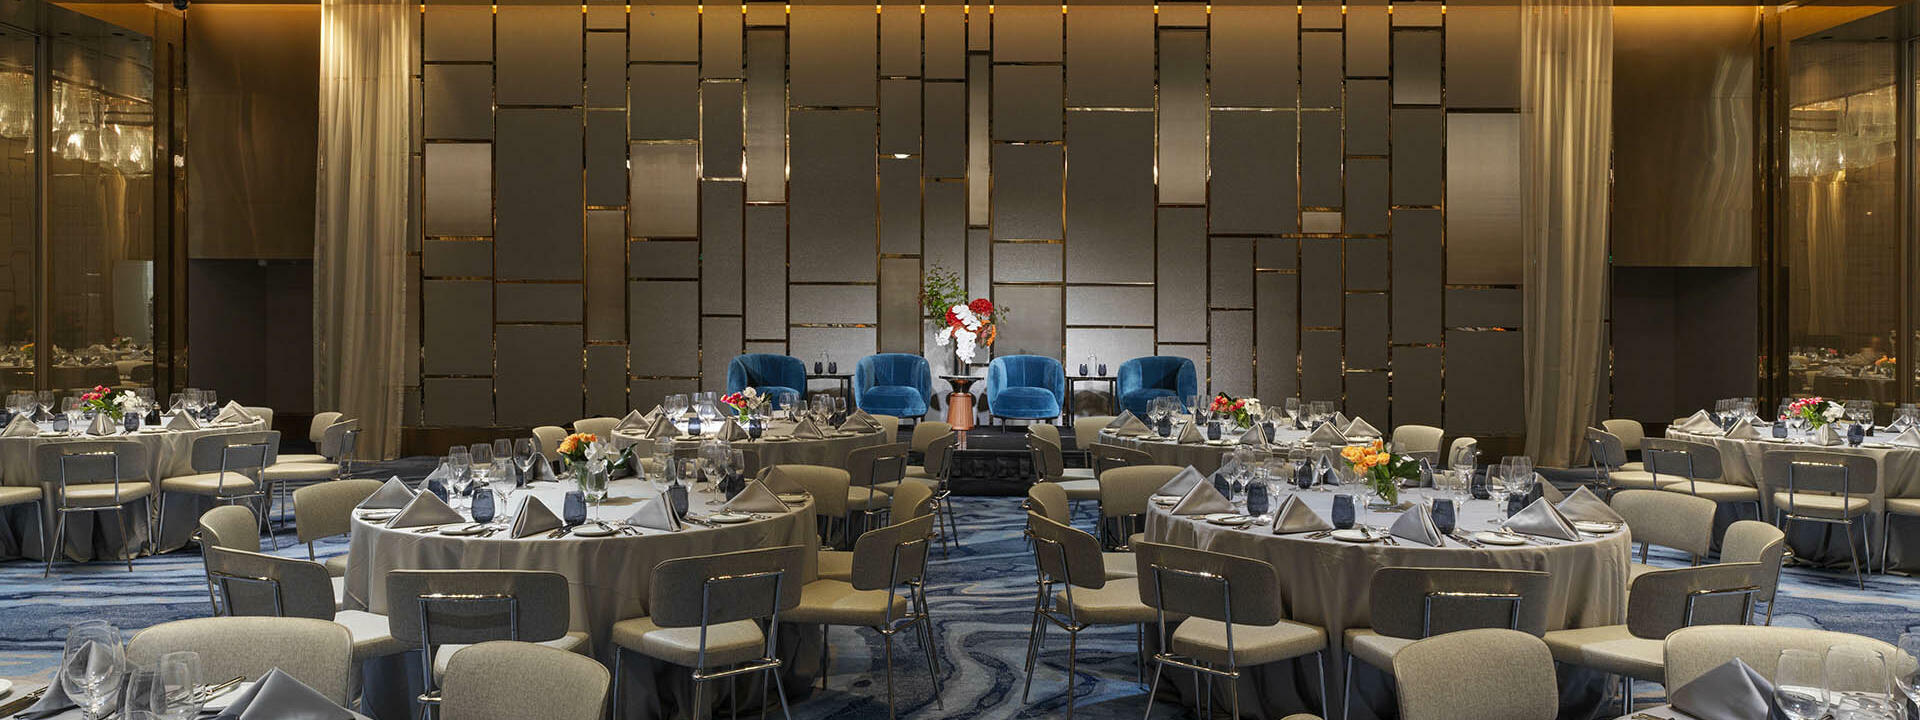 Pearl ballroom at Crown Towers Sydney